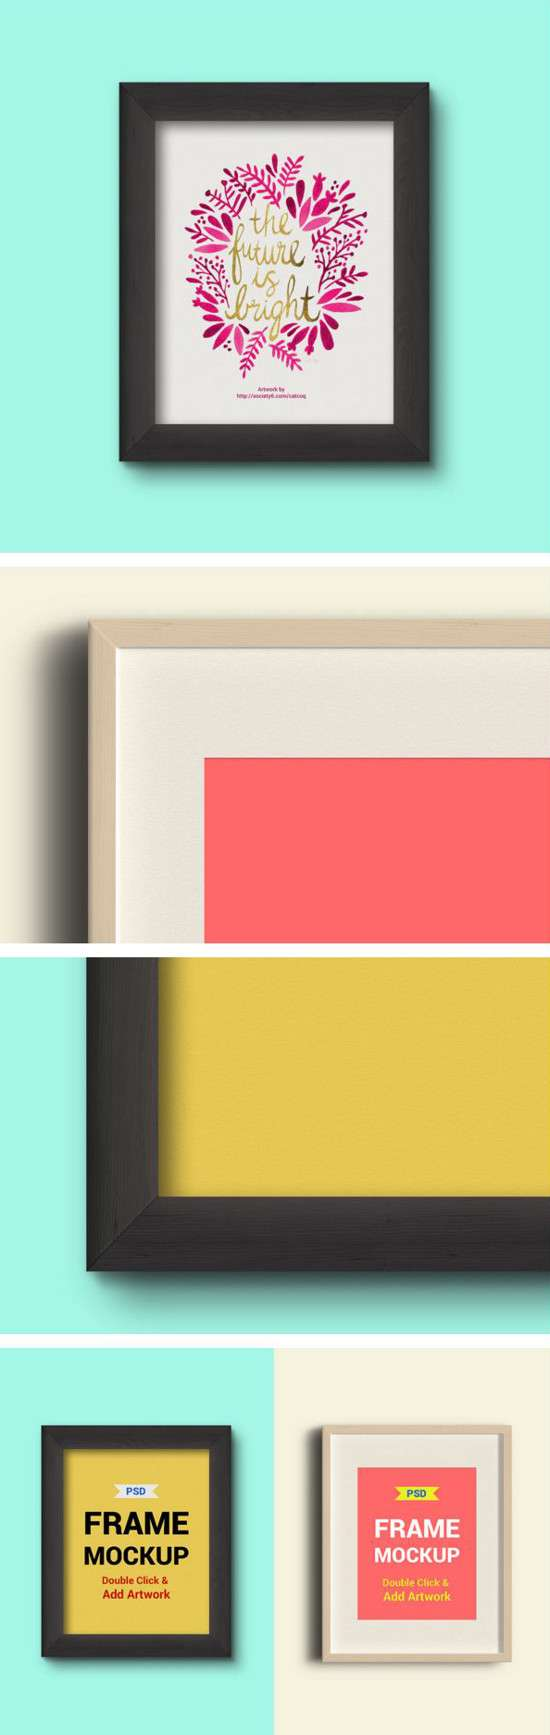 photo_frames_psd_mockups